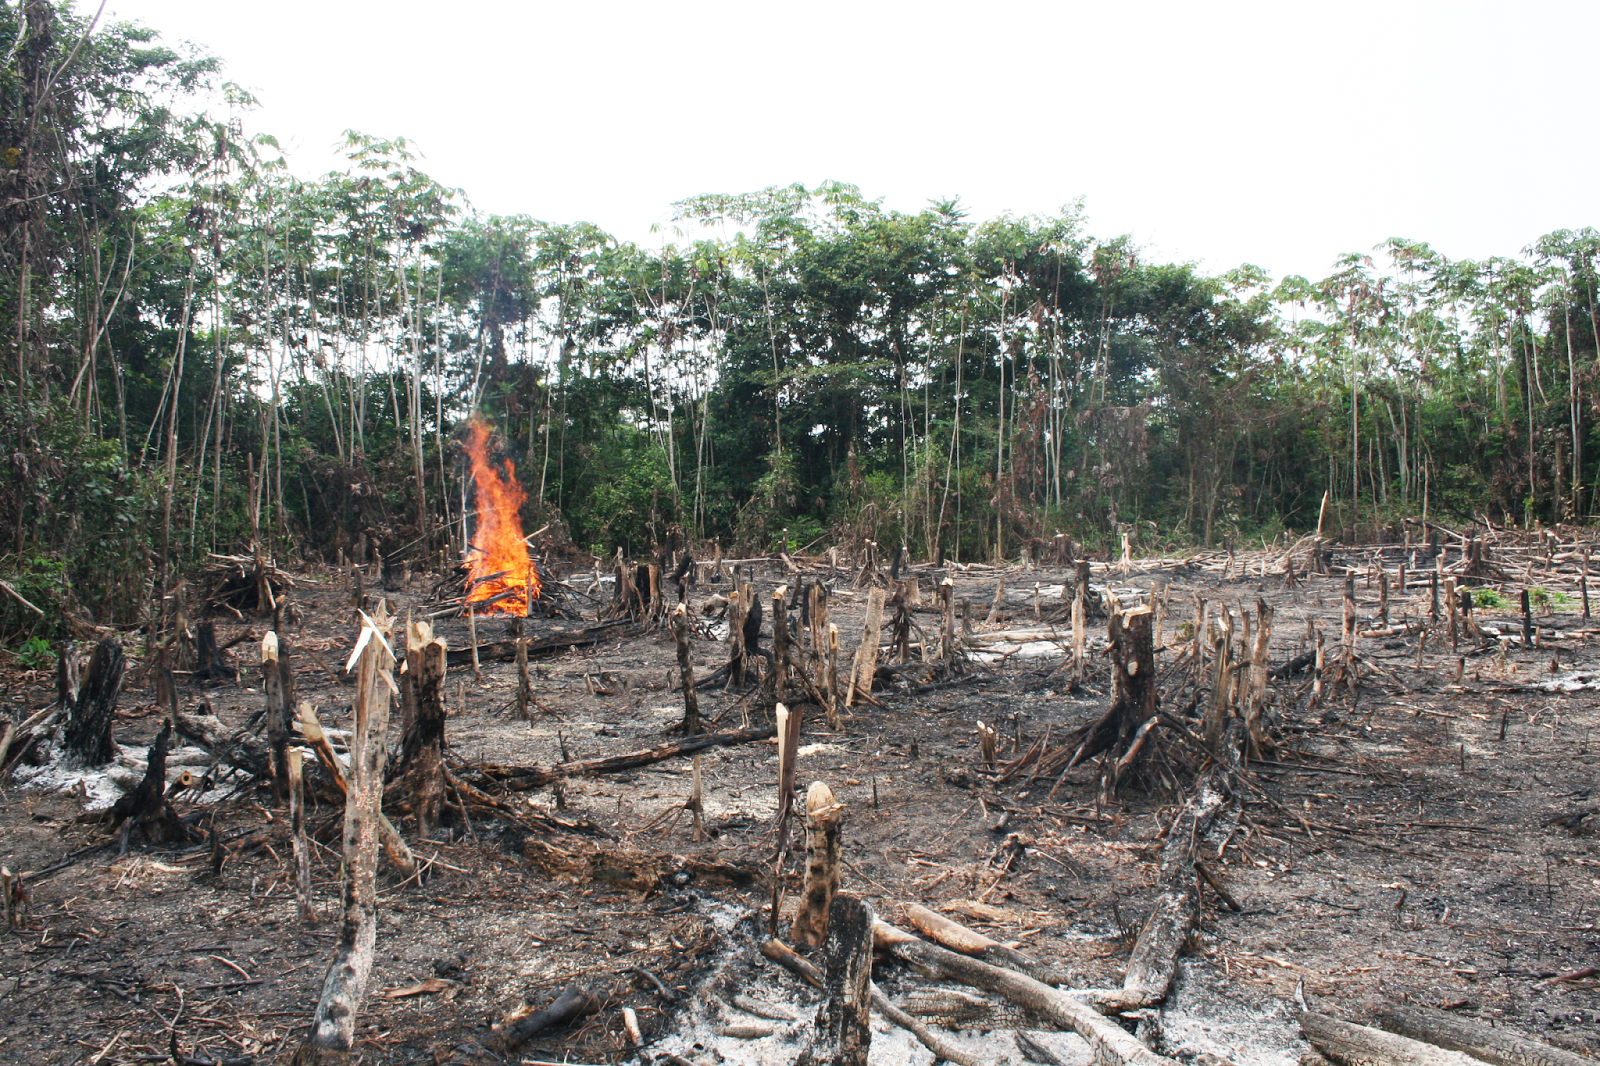 the cause and effect of deforestation in tropical rainforests Large-scale mining operations, especially those using open-pit mining techniques, can result in significant deforestation through forest clearing and the construction of roads which open remote forest areas to transient settlers, land speculators, and small-scale miners.